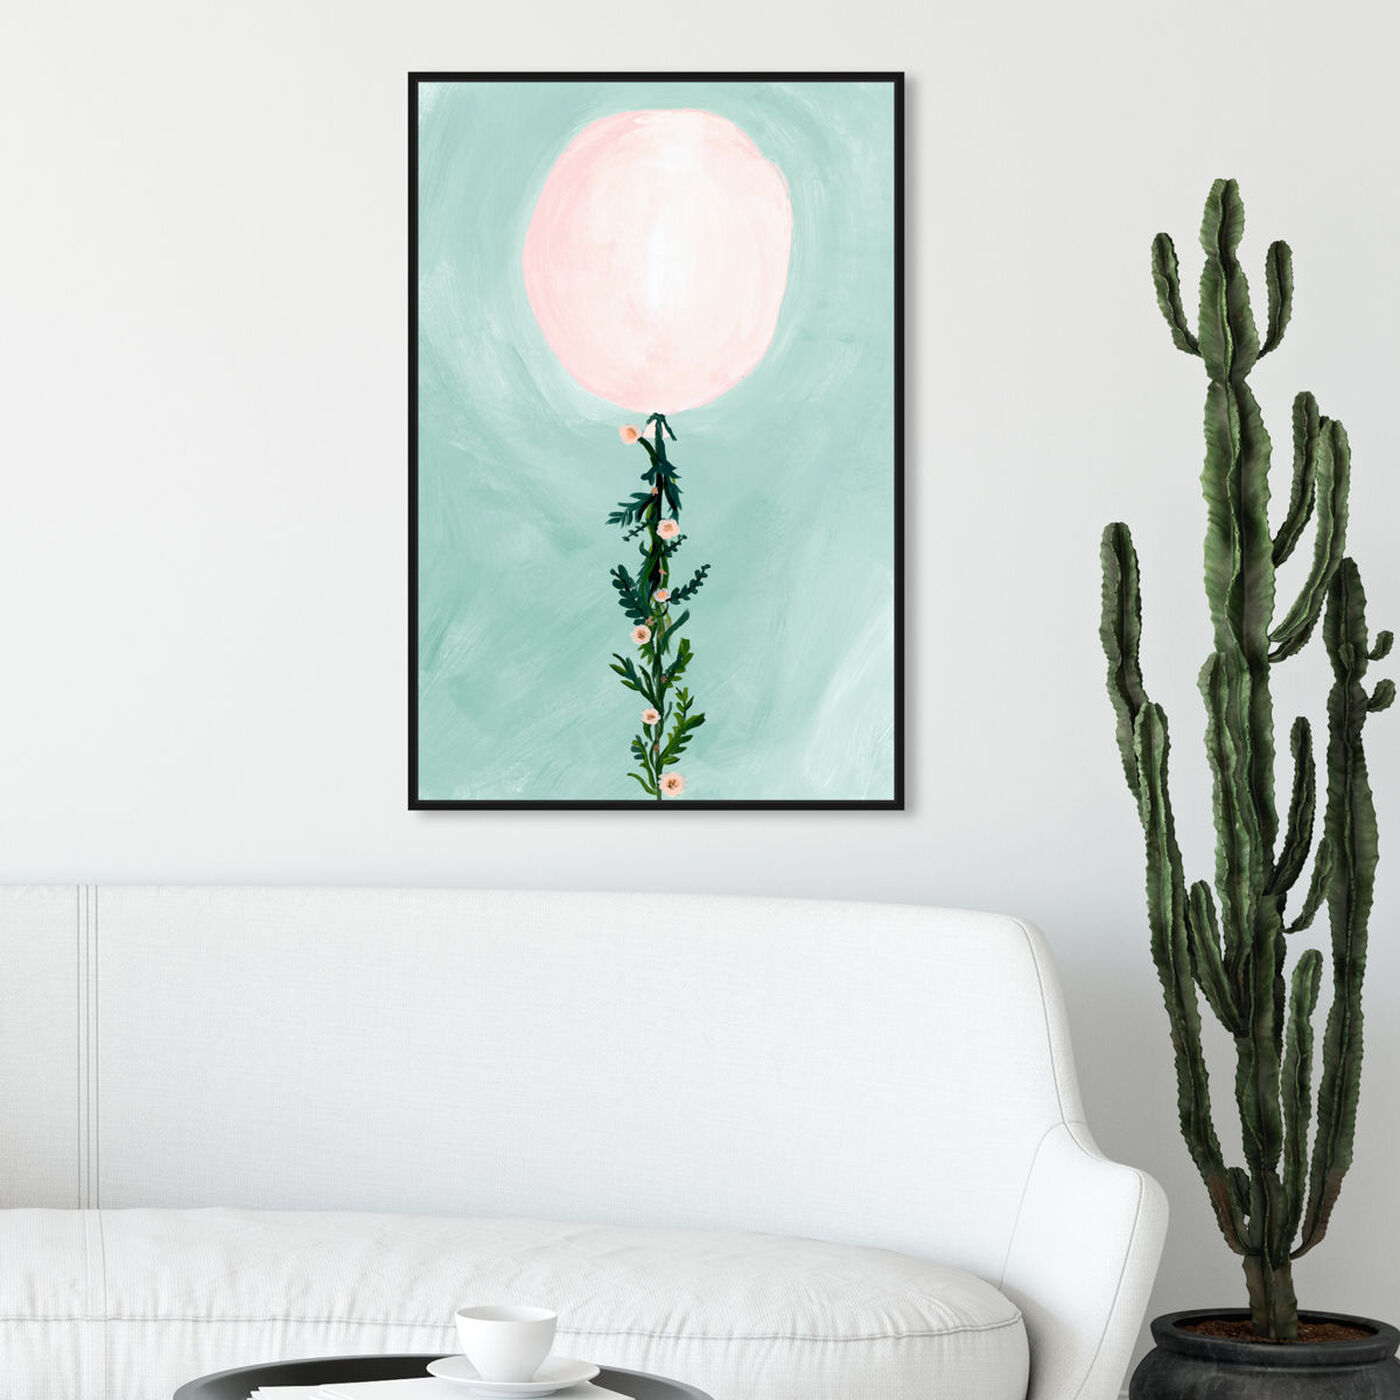 Hanging view of Pastel Flower Balloon featuring floral and botanical and botanicals art.